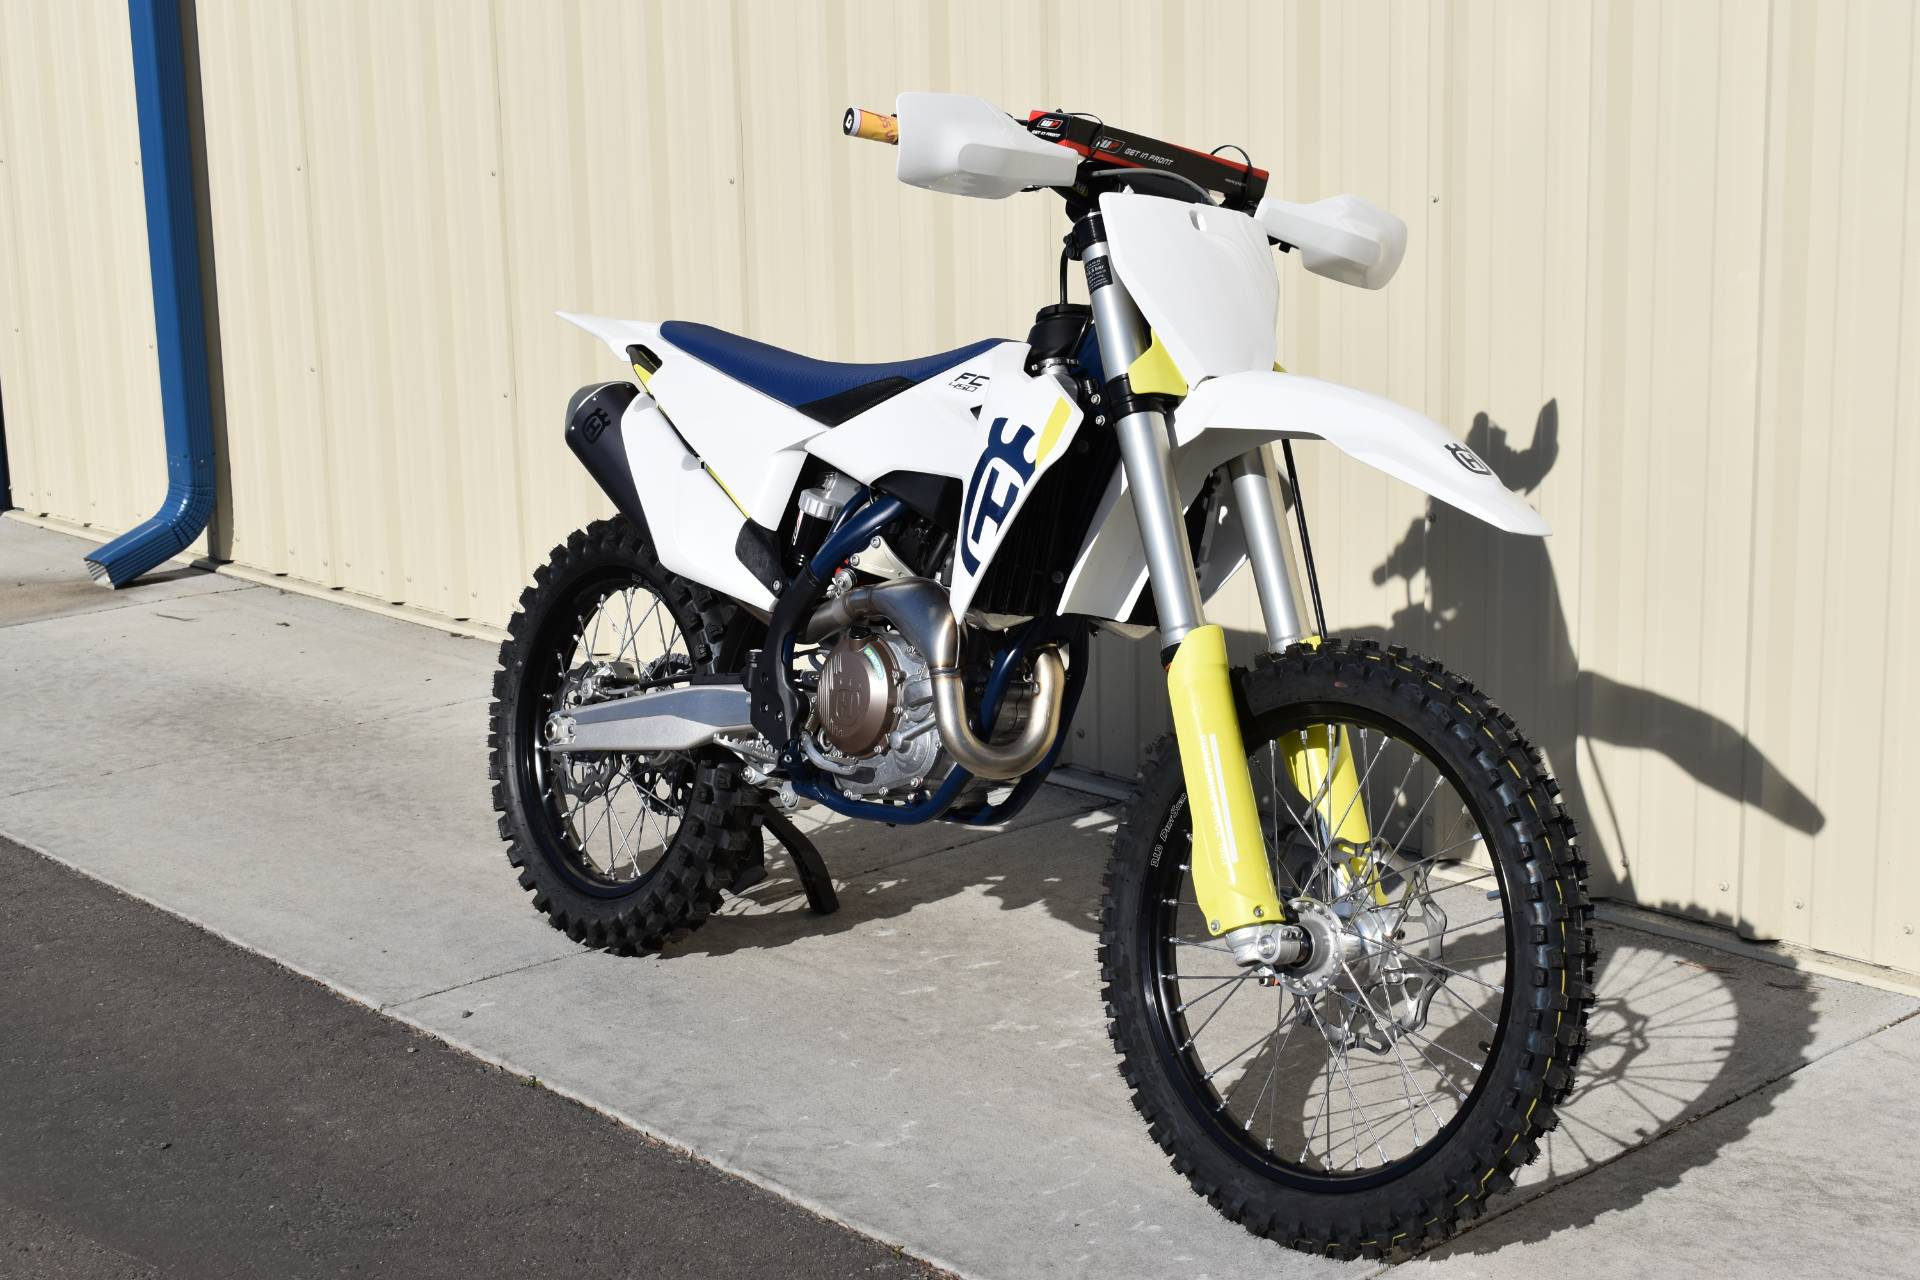 2019 Husqvarna FC 450 in Boise, Idaho - Photo 2